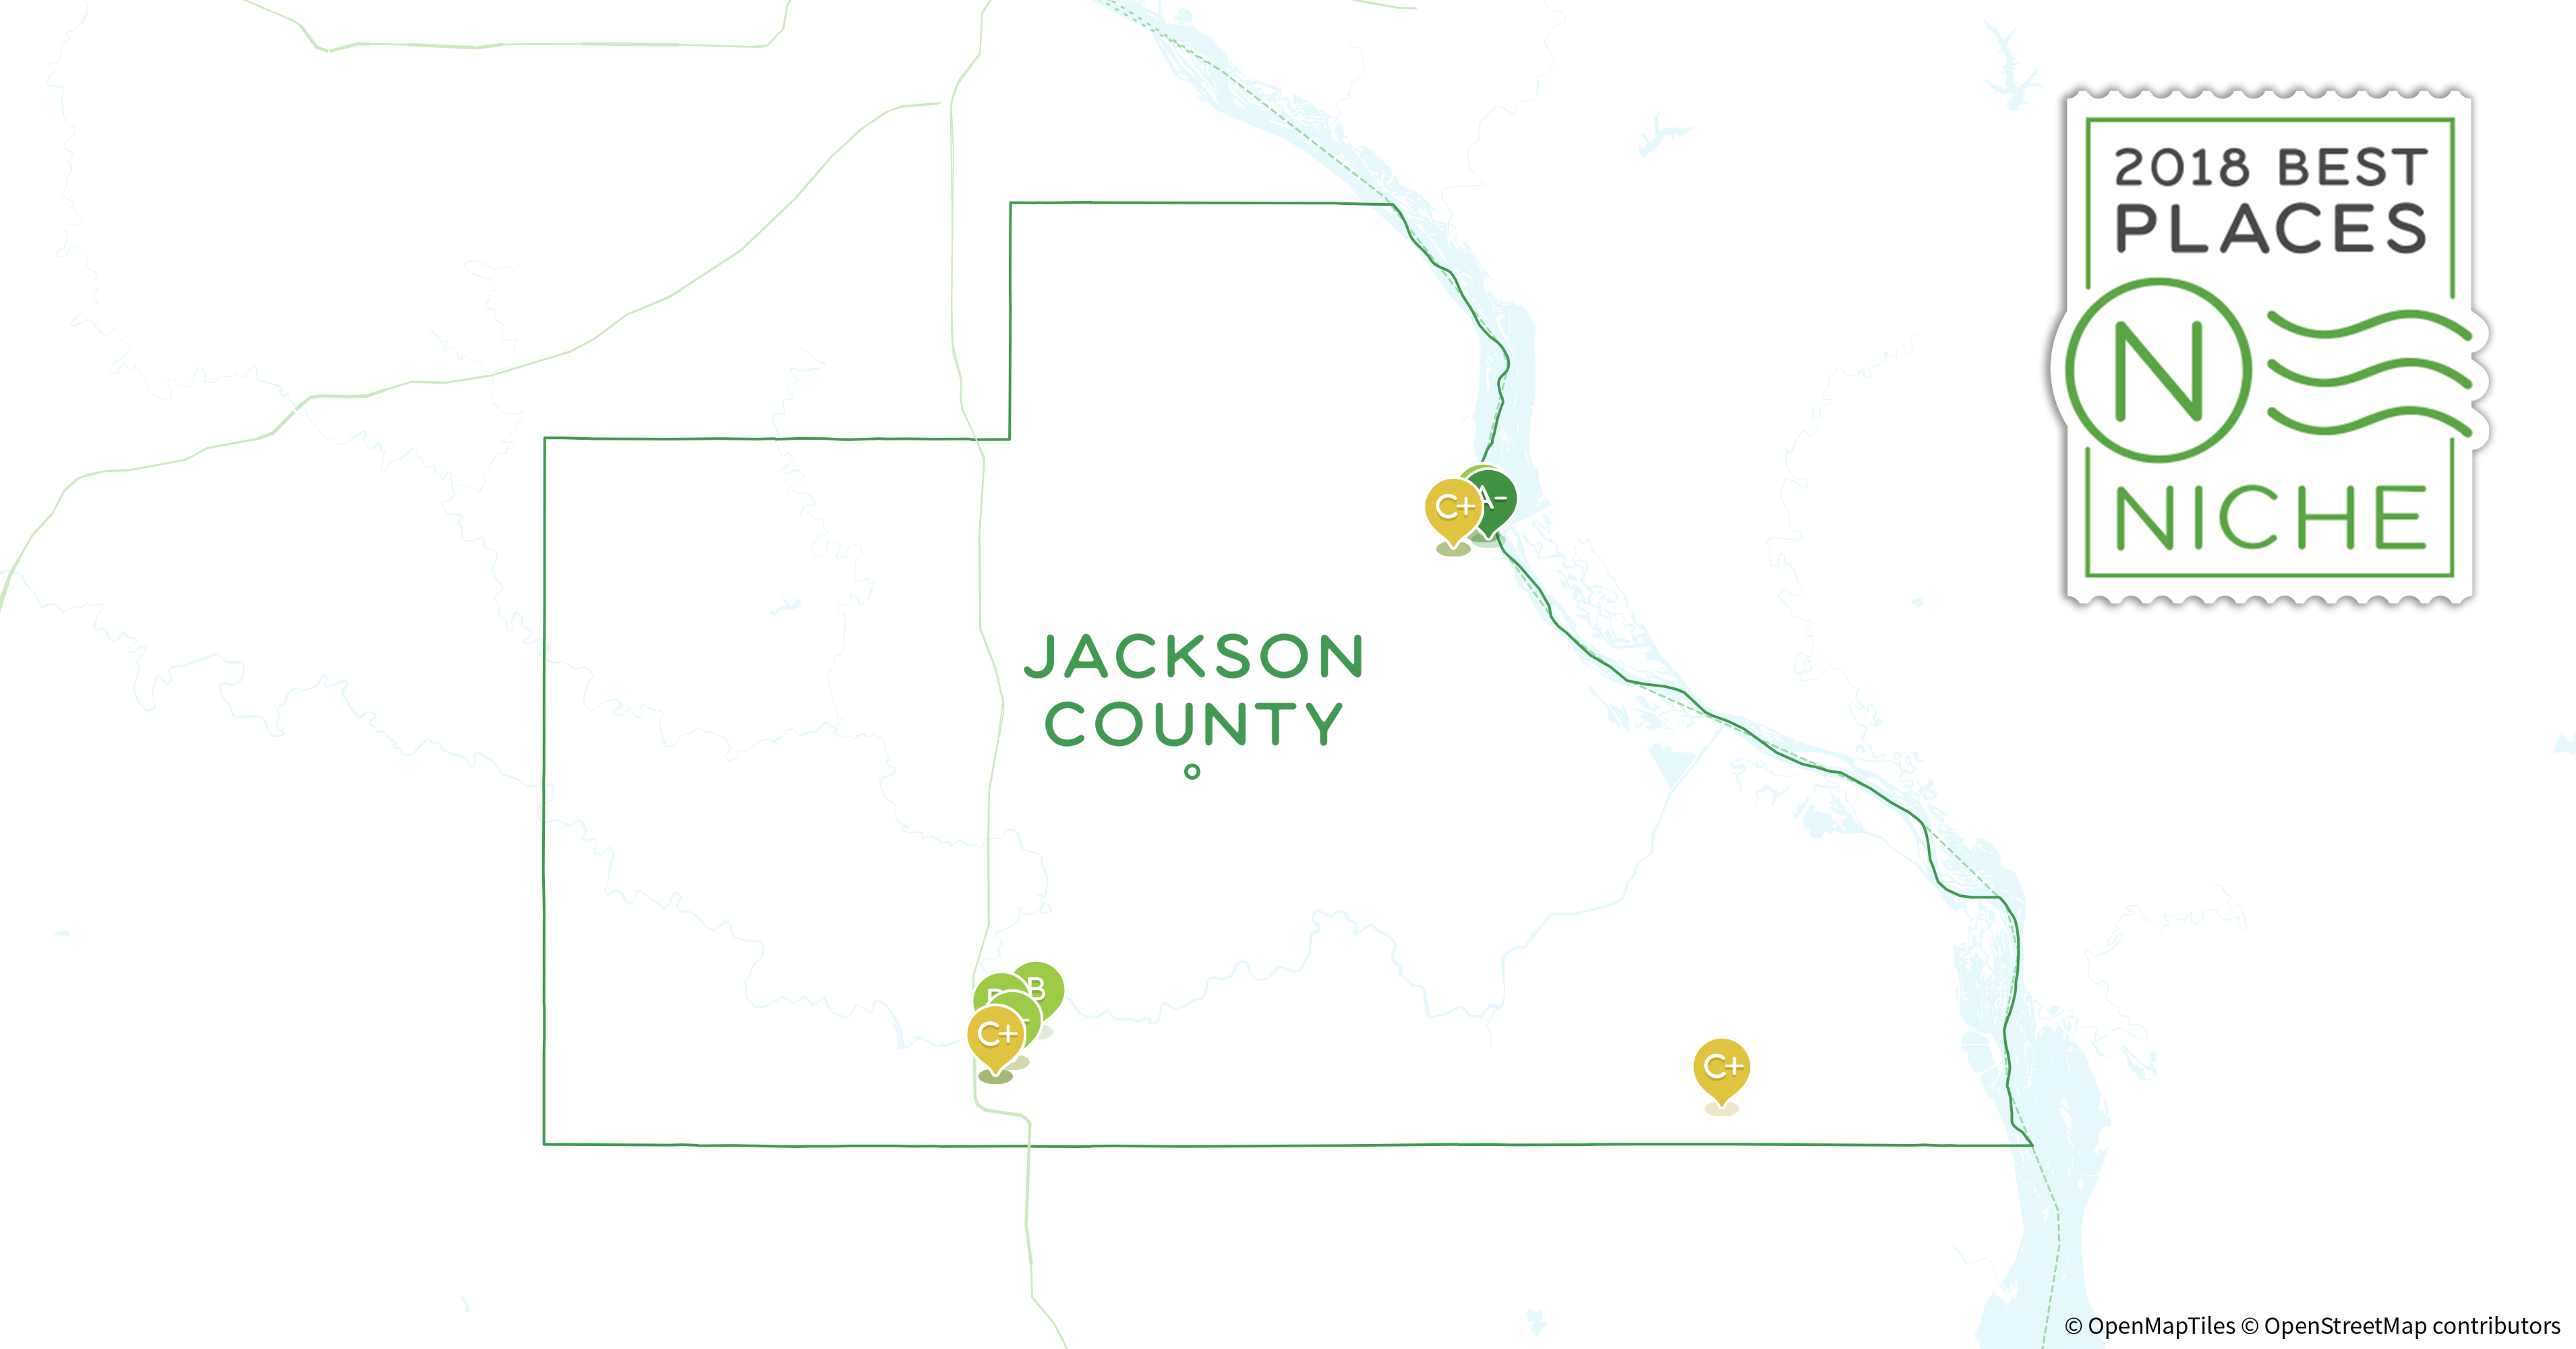 Jackson County Iowa Map.2018 Safest Places To Live In Jackson County Ia Niche